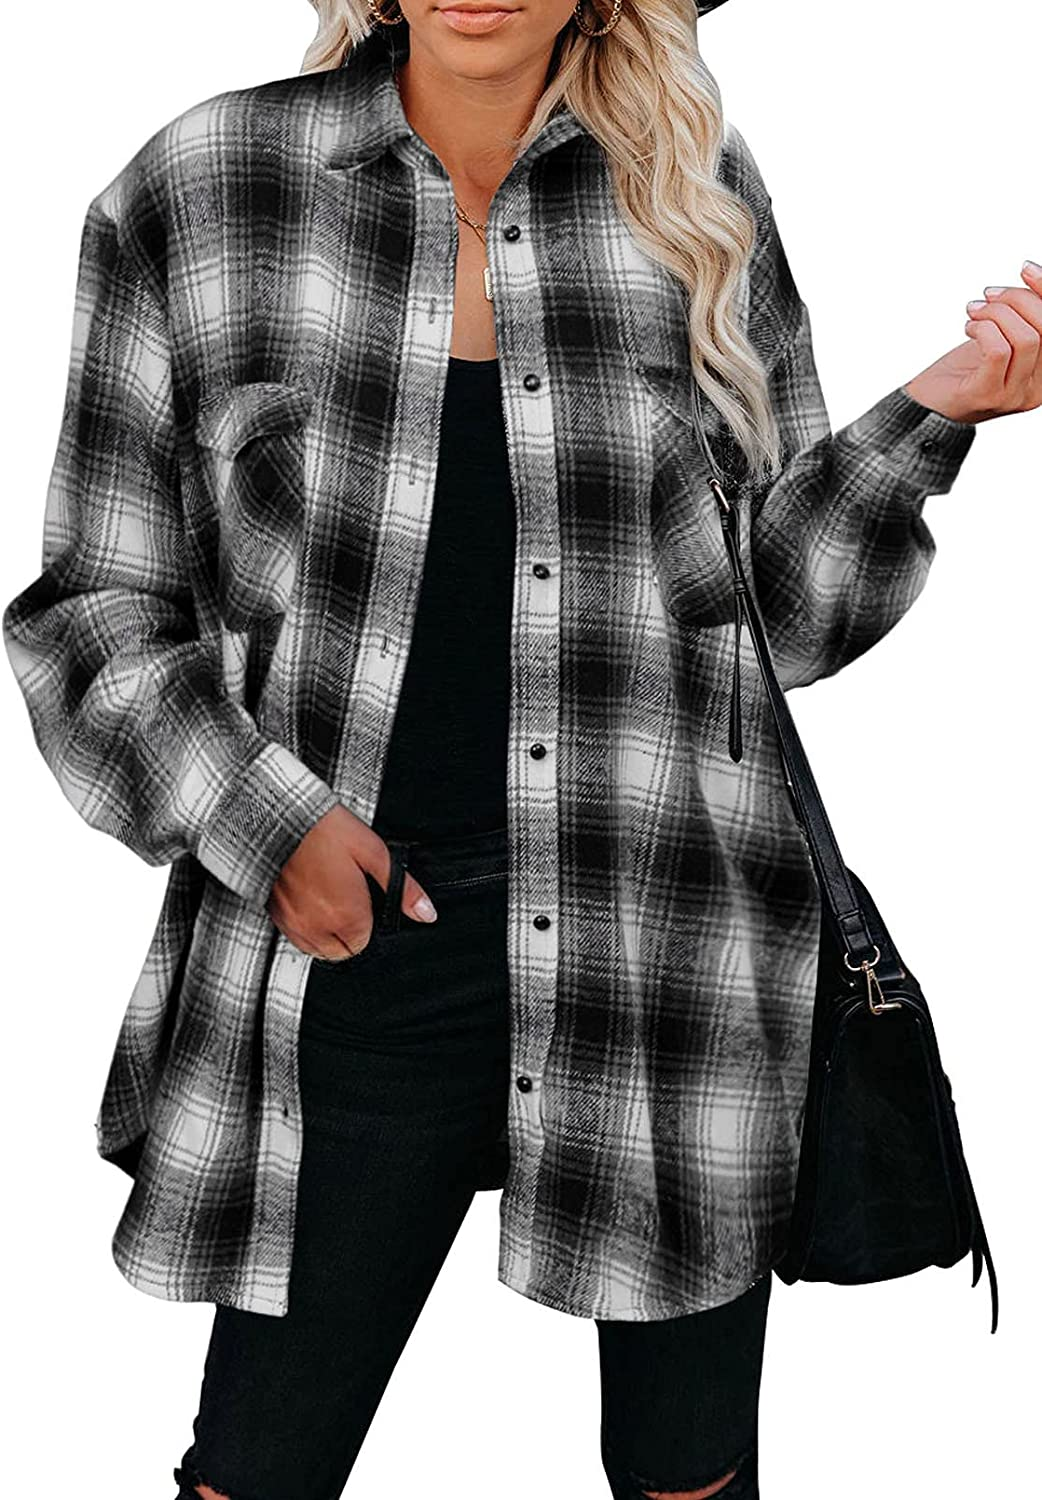 Rosfancy Women's Casual Plaid Button Down Shirts Soft Long Sleeve Blouses Tops